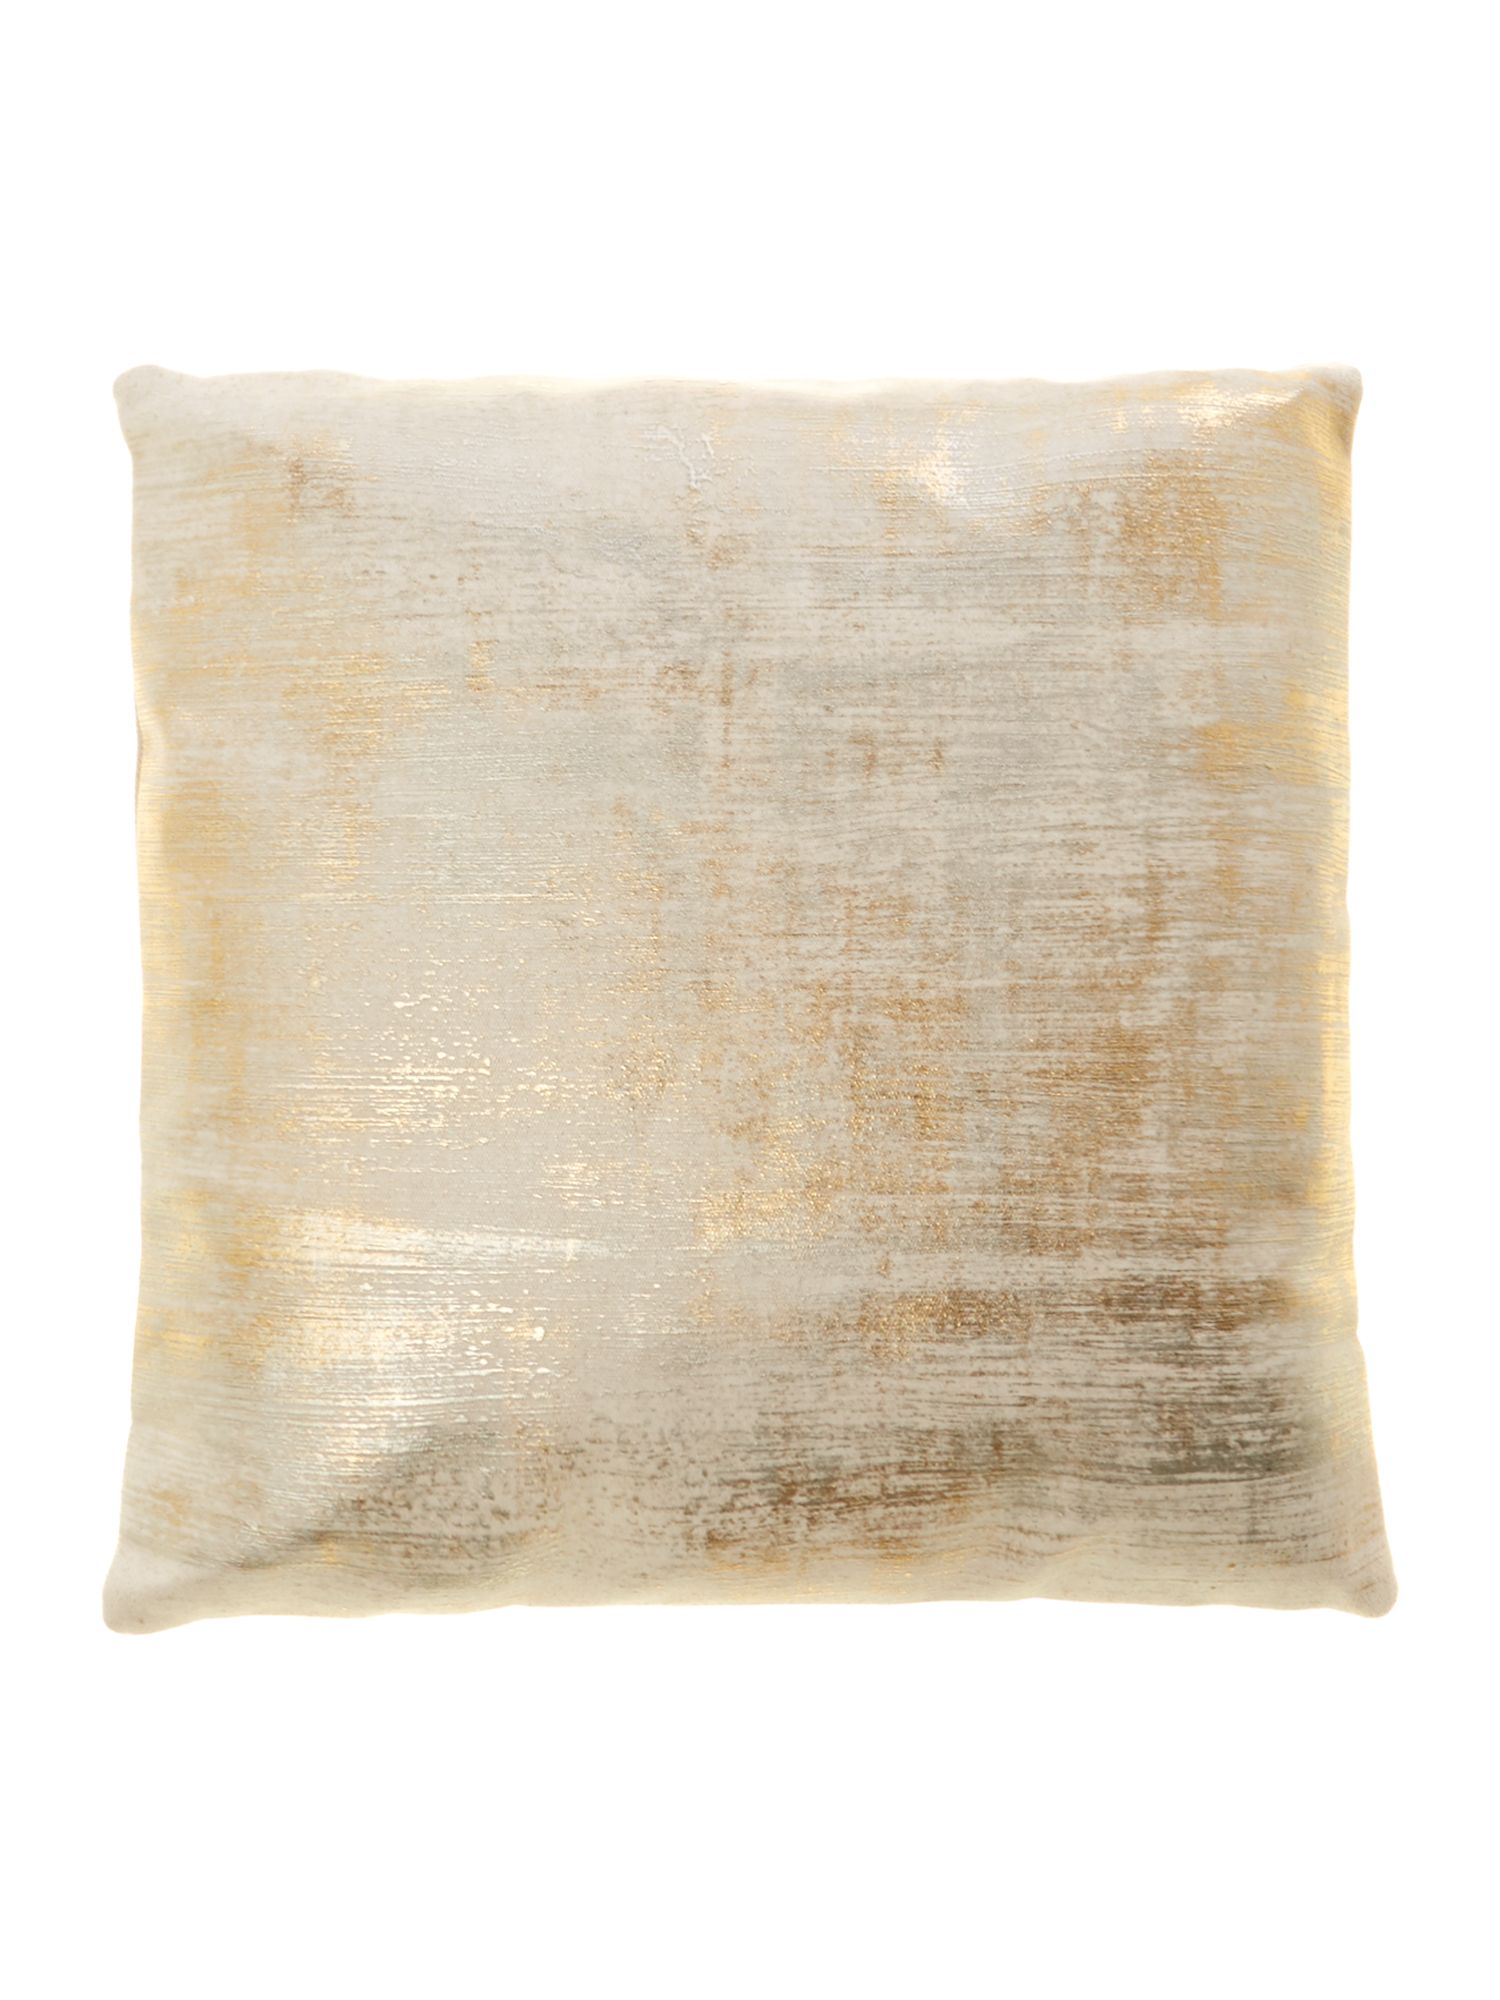 Leblon 45x45 cushion in gold and pewter